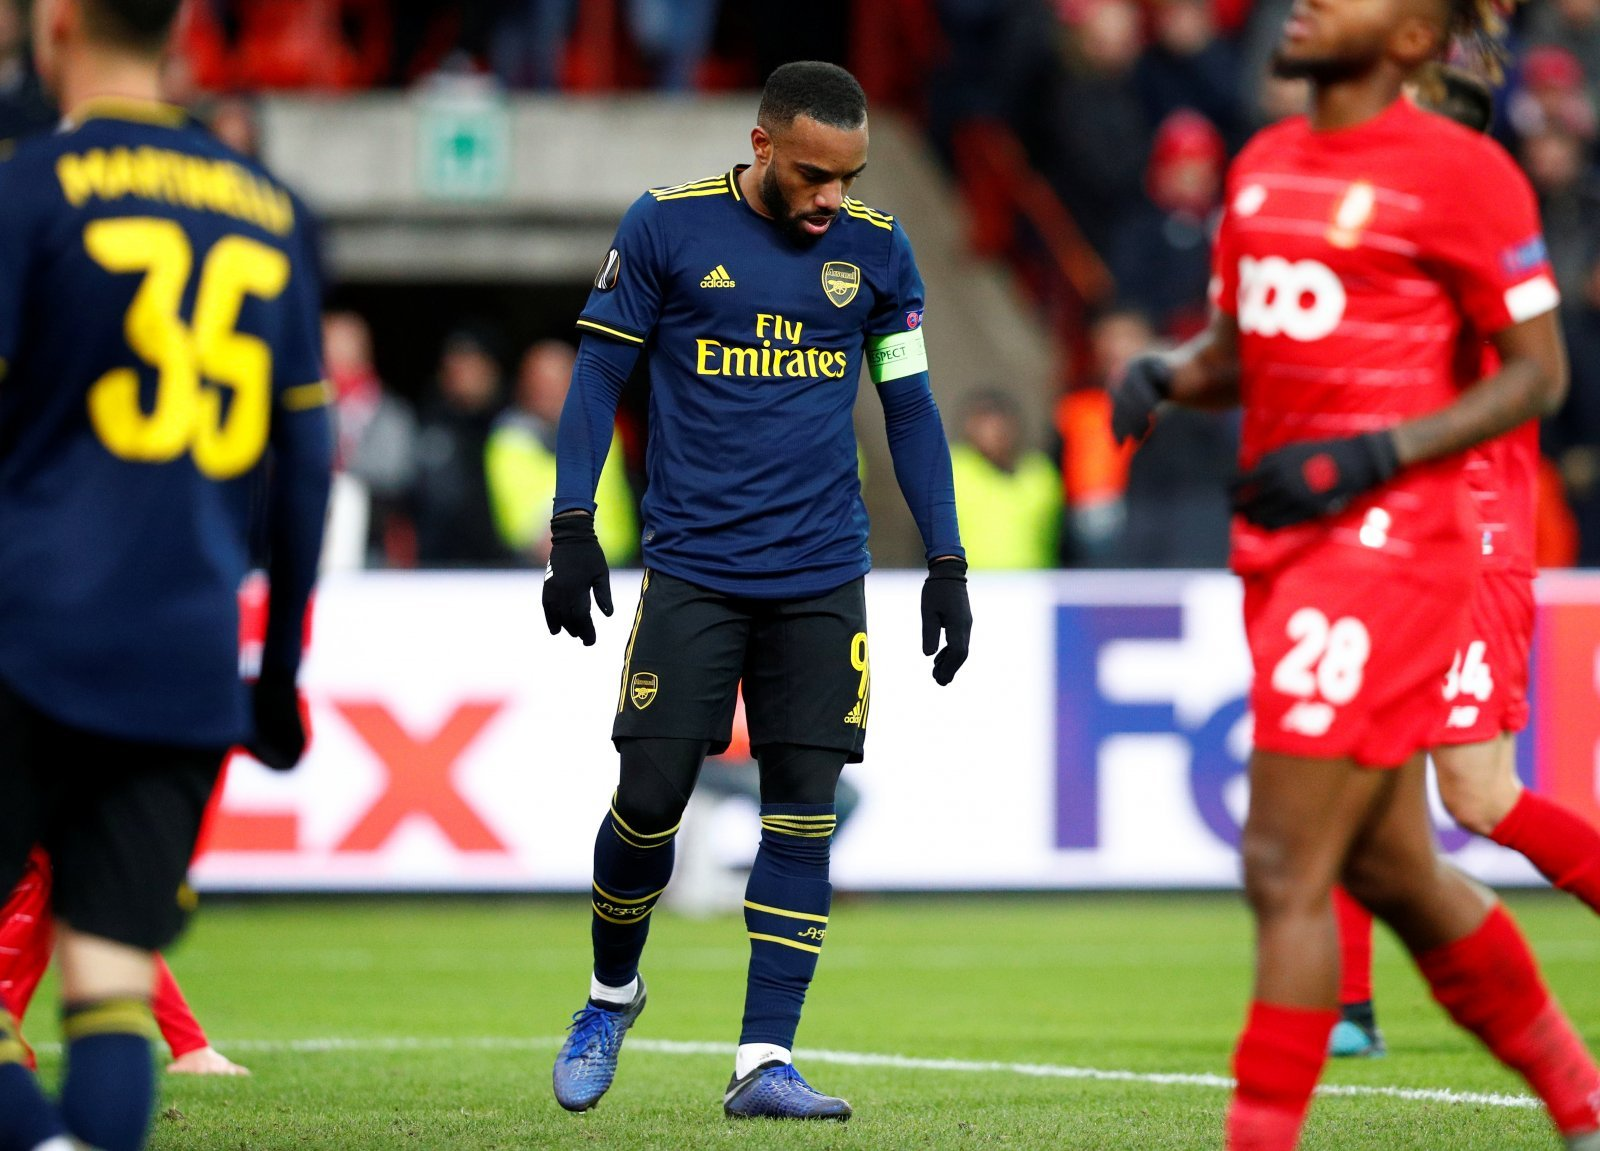 Arsenal: Plenty of fans frustrated by Alexandre Lacazette's poor form this season